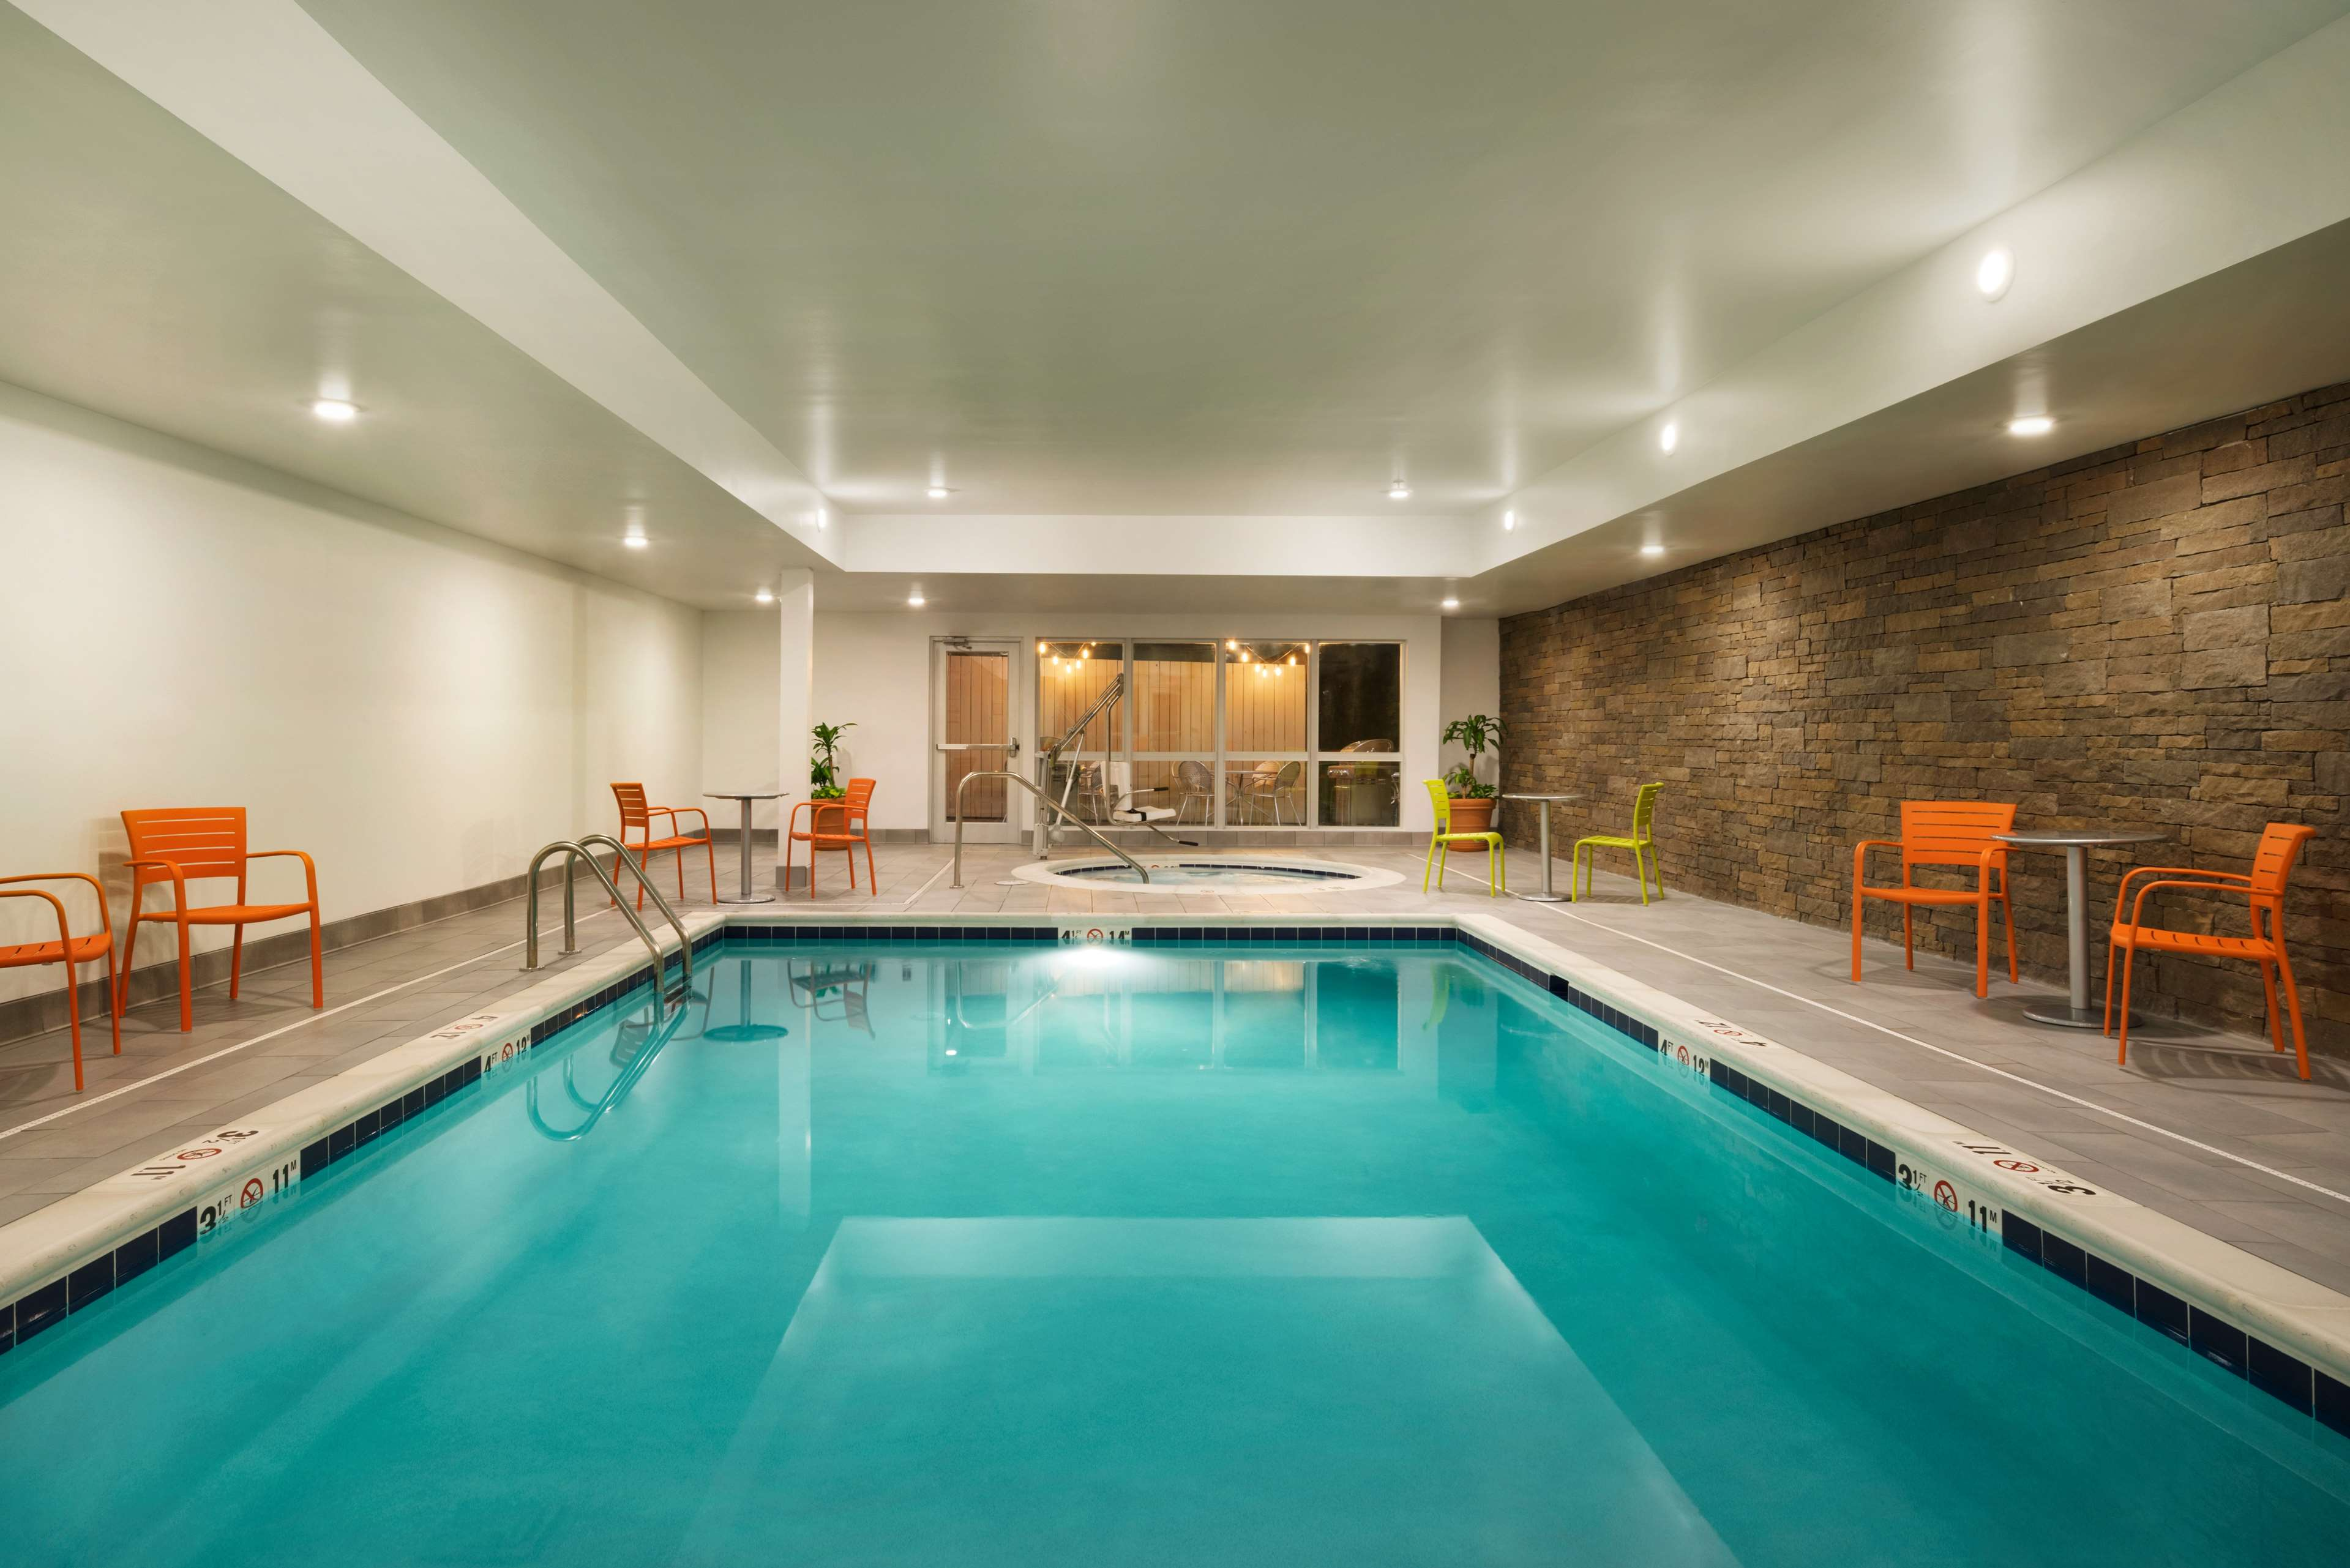 Home2 Suites by Hilton Roanoke image 9